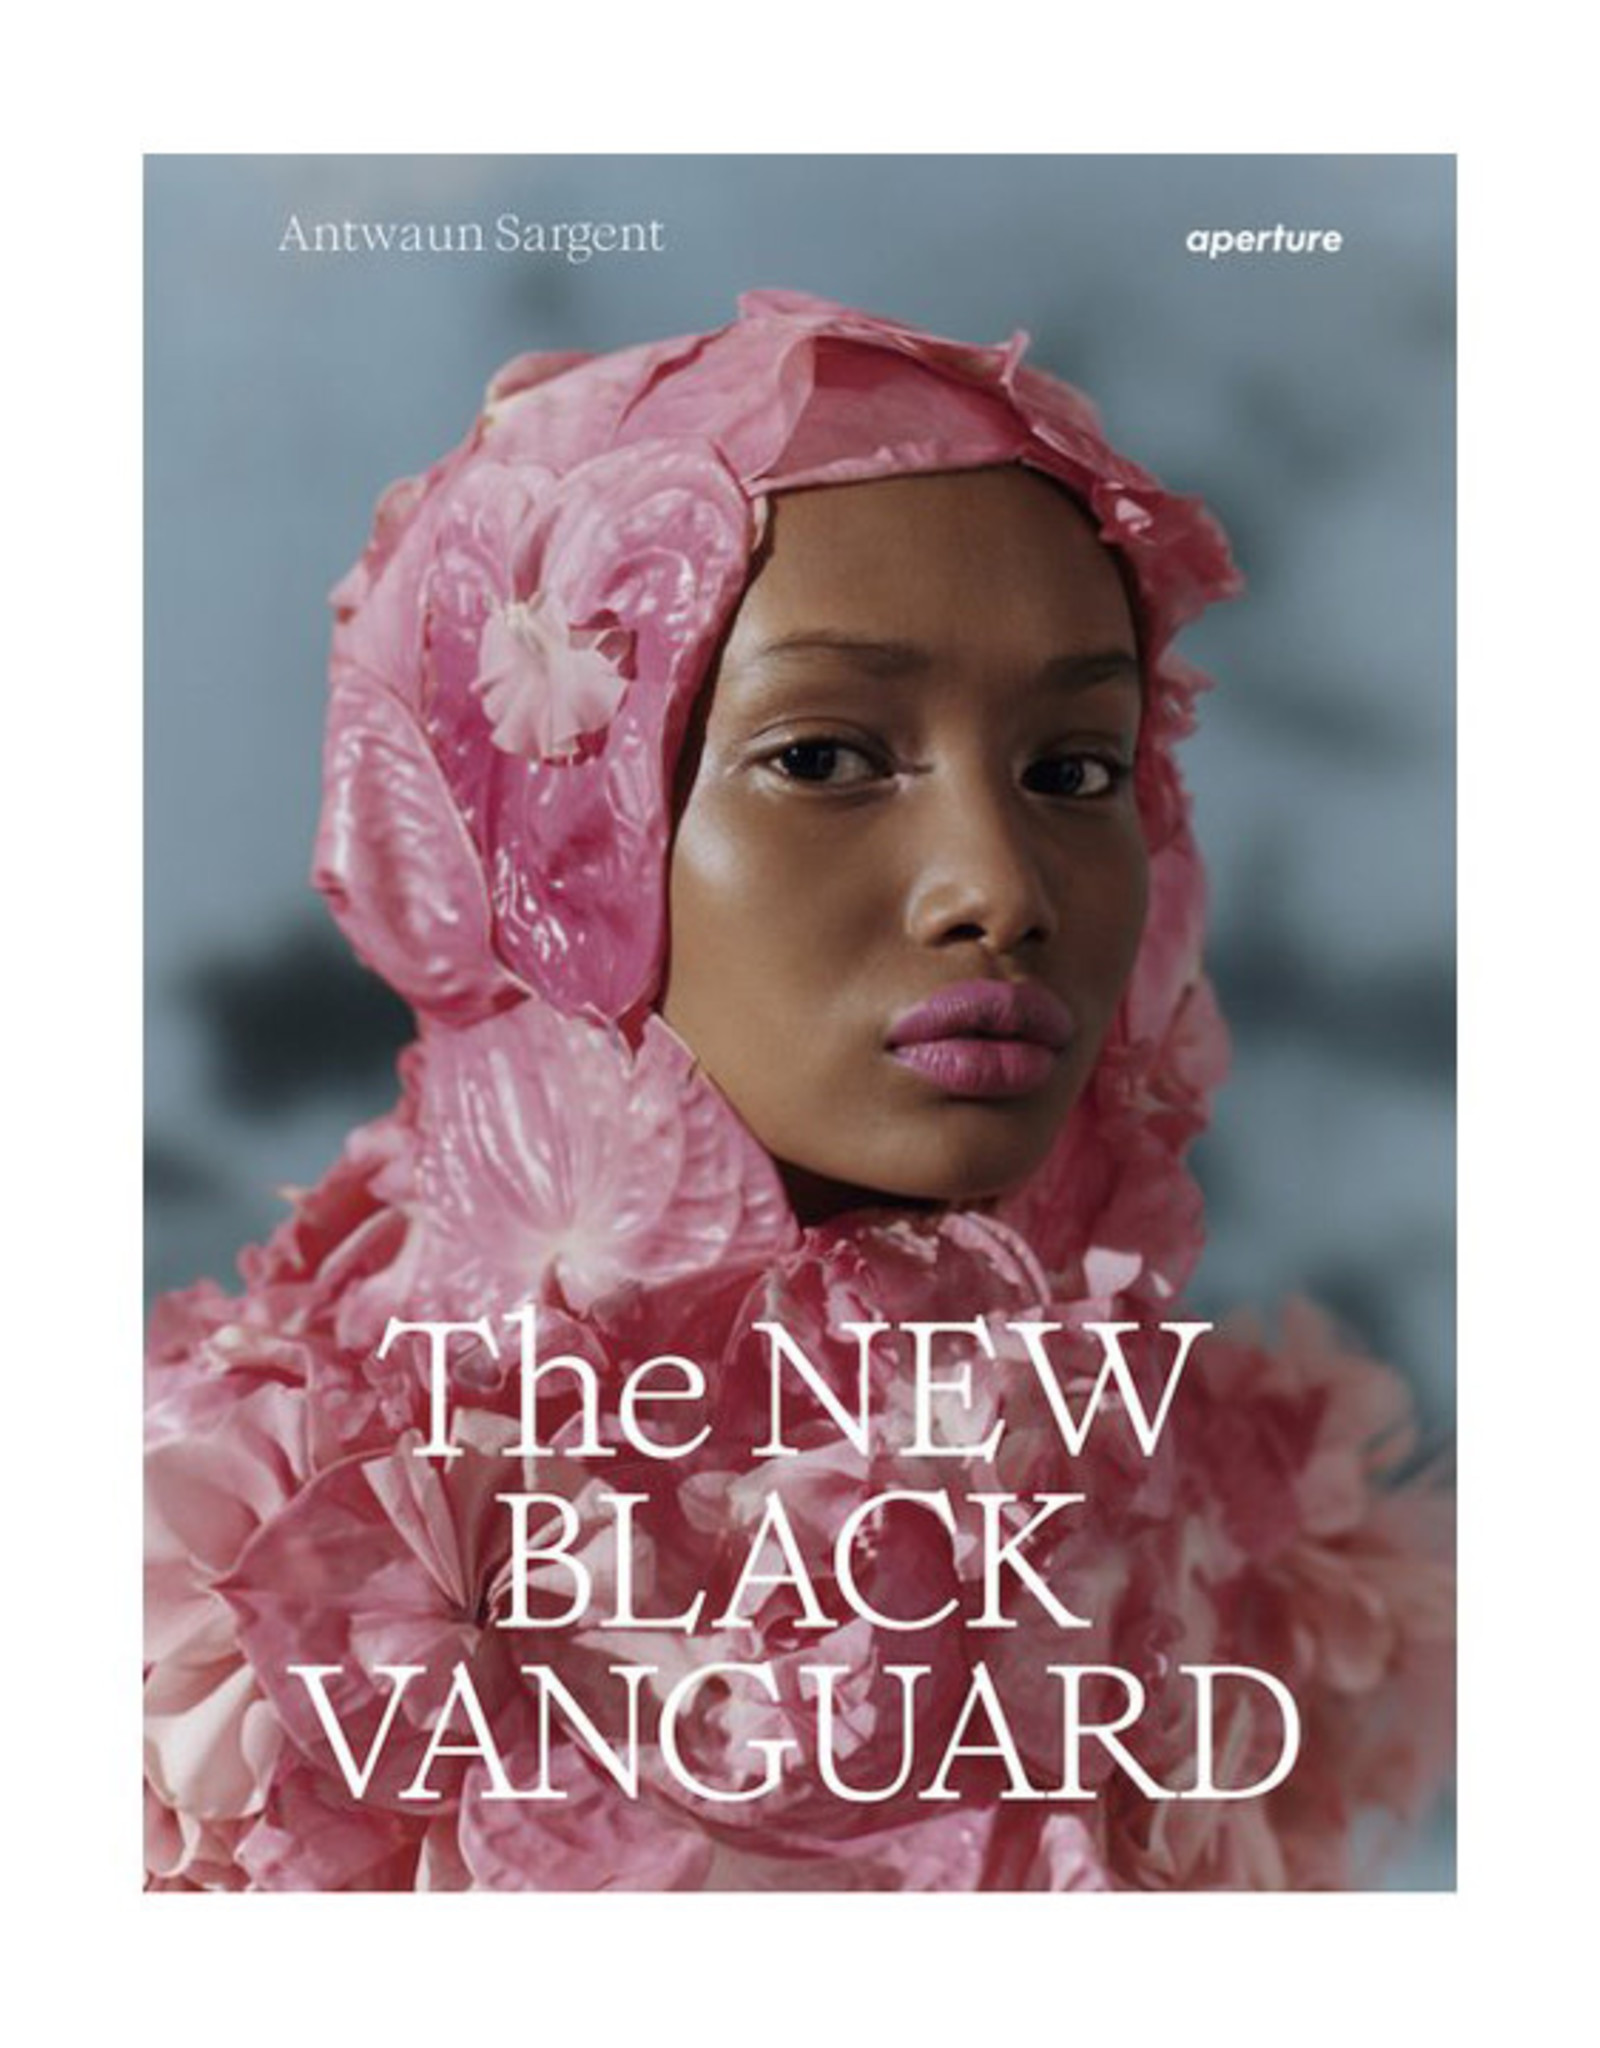 The New Black Vanguard